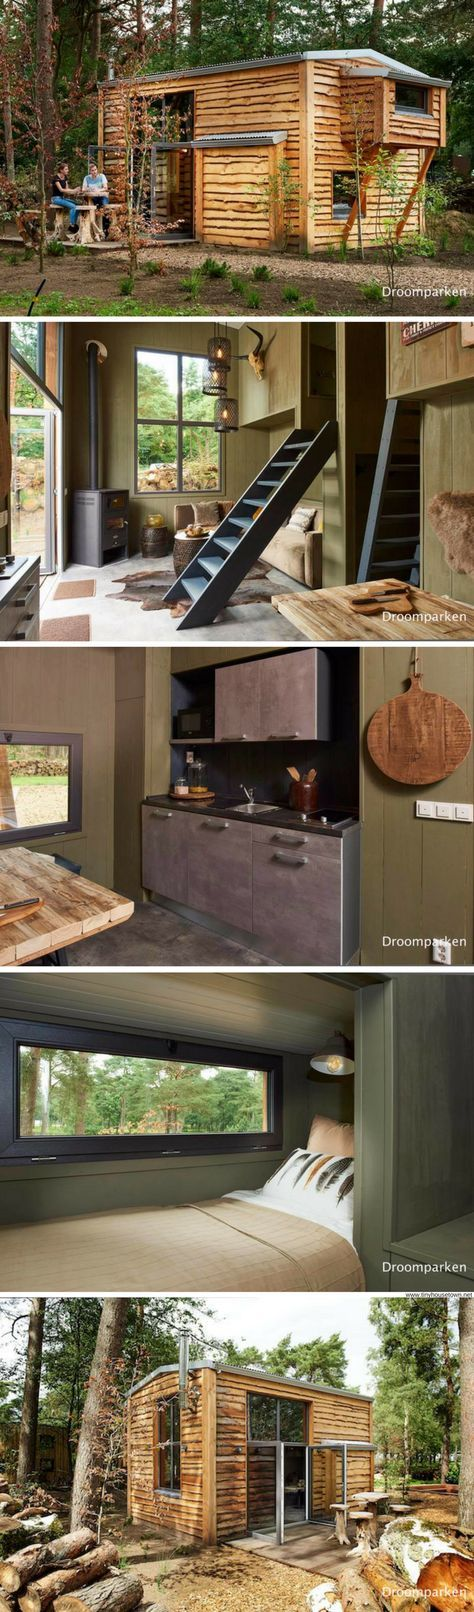 A cozy tiny house, designed and built for a family of four at the Droomparken tiny house resort